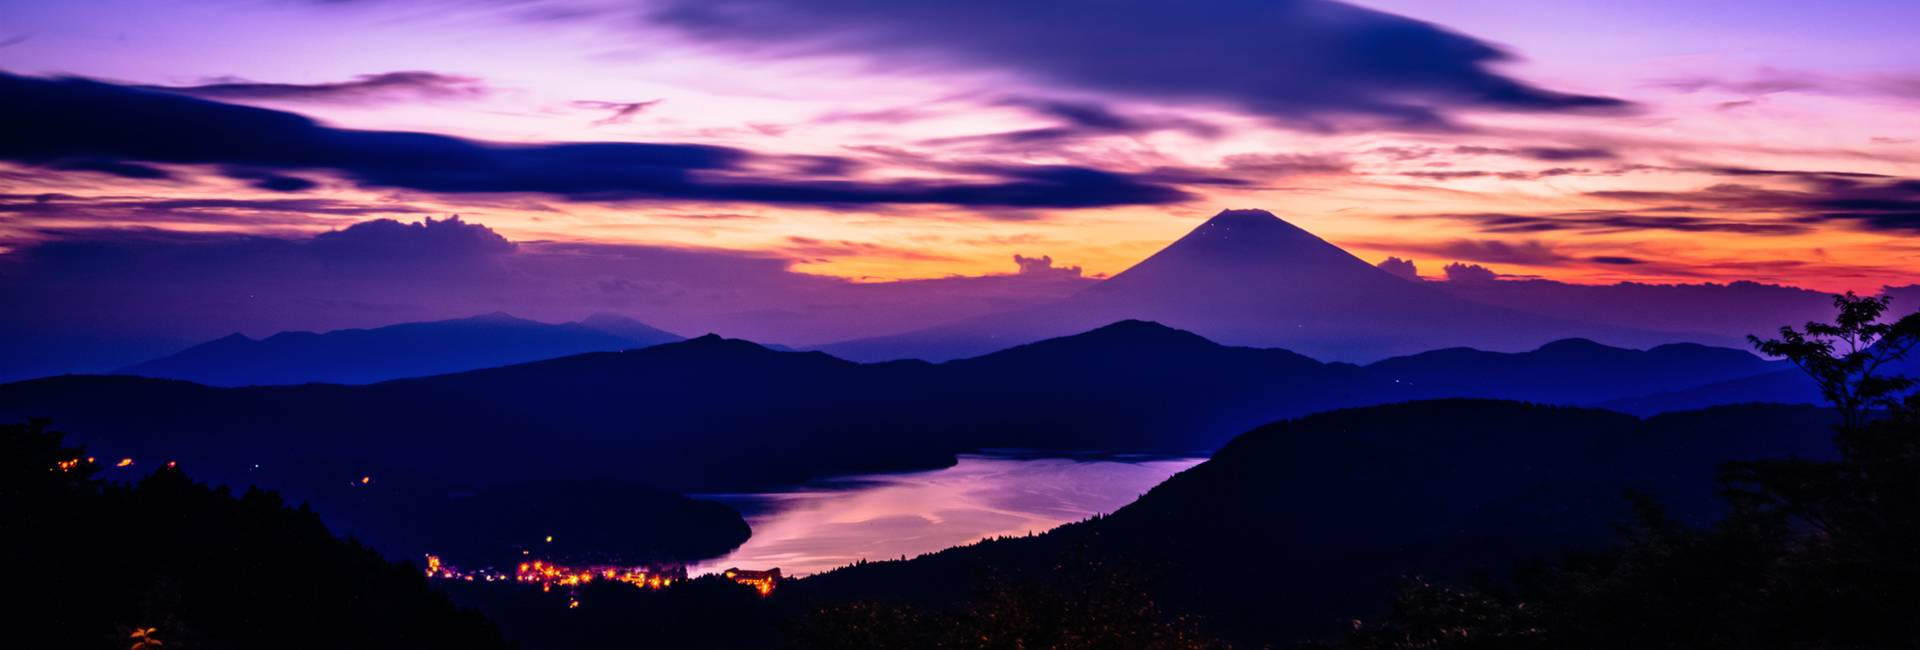 night view of Hakone and Mount Fuji